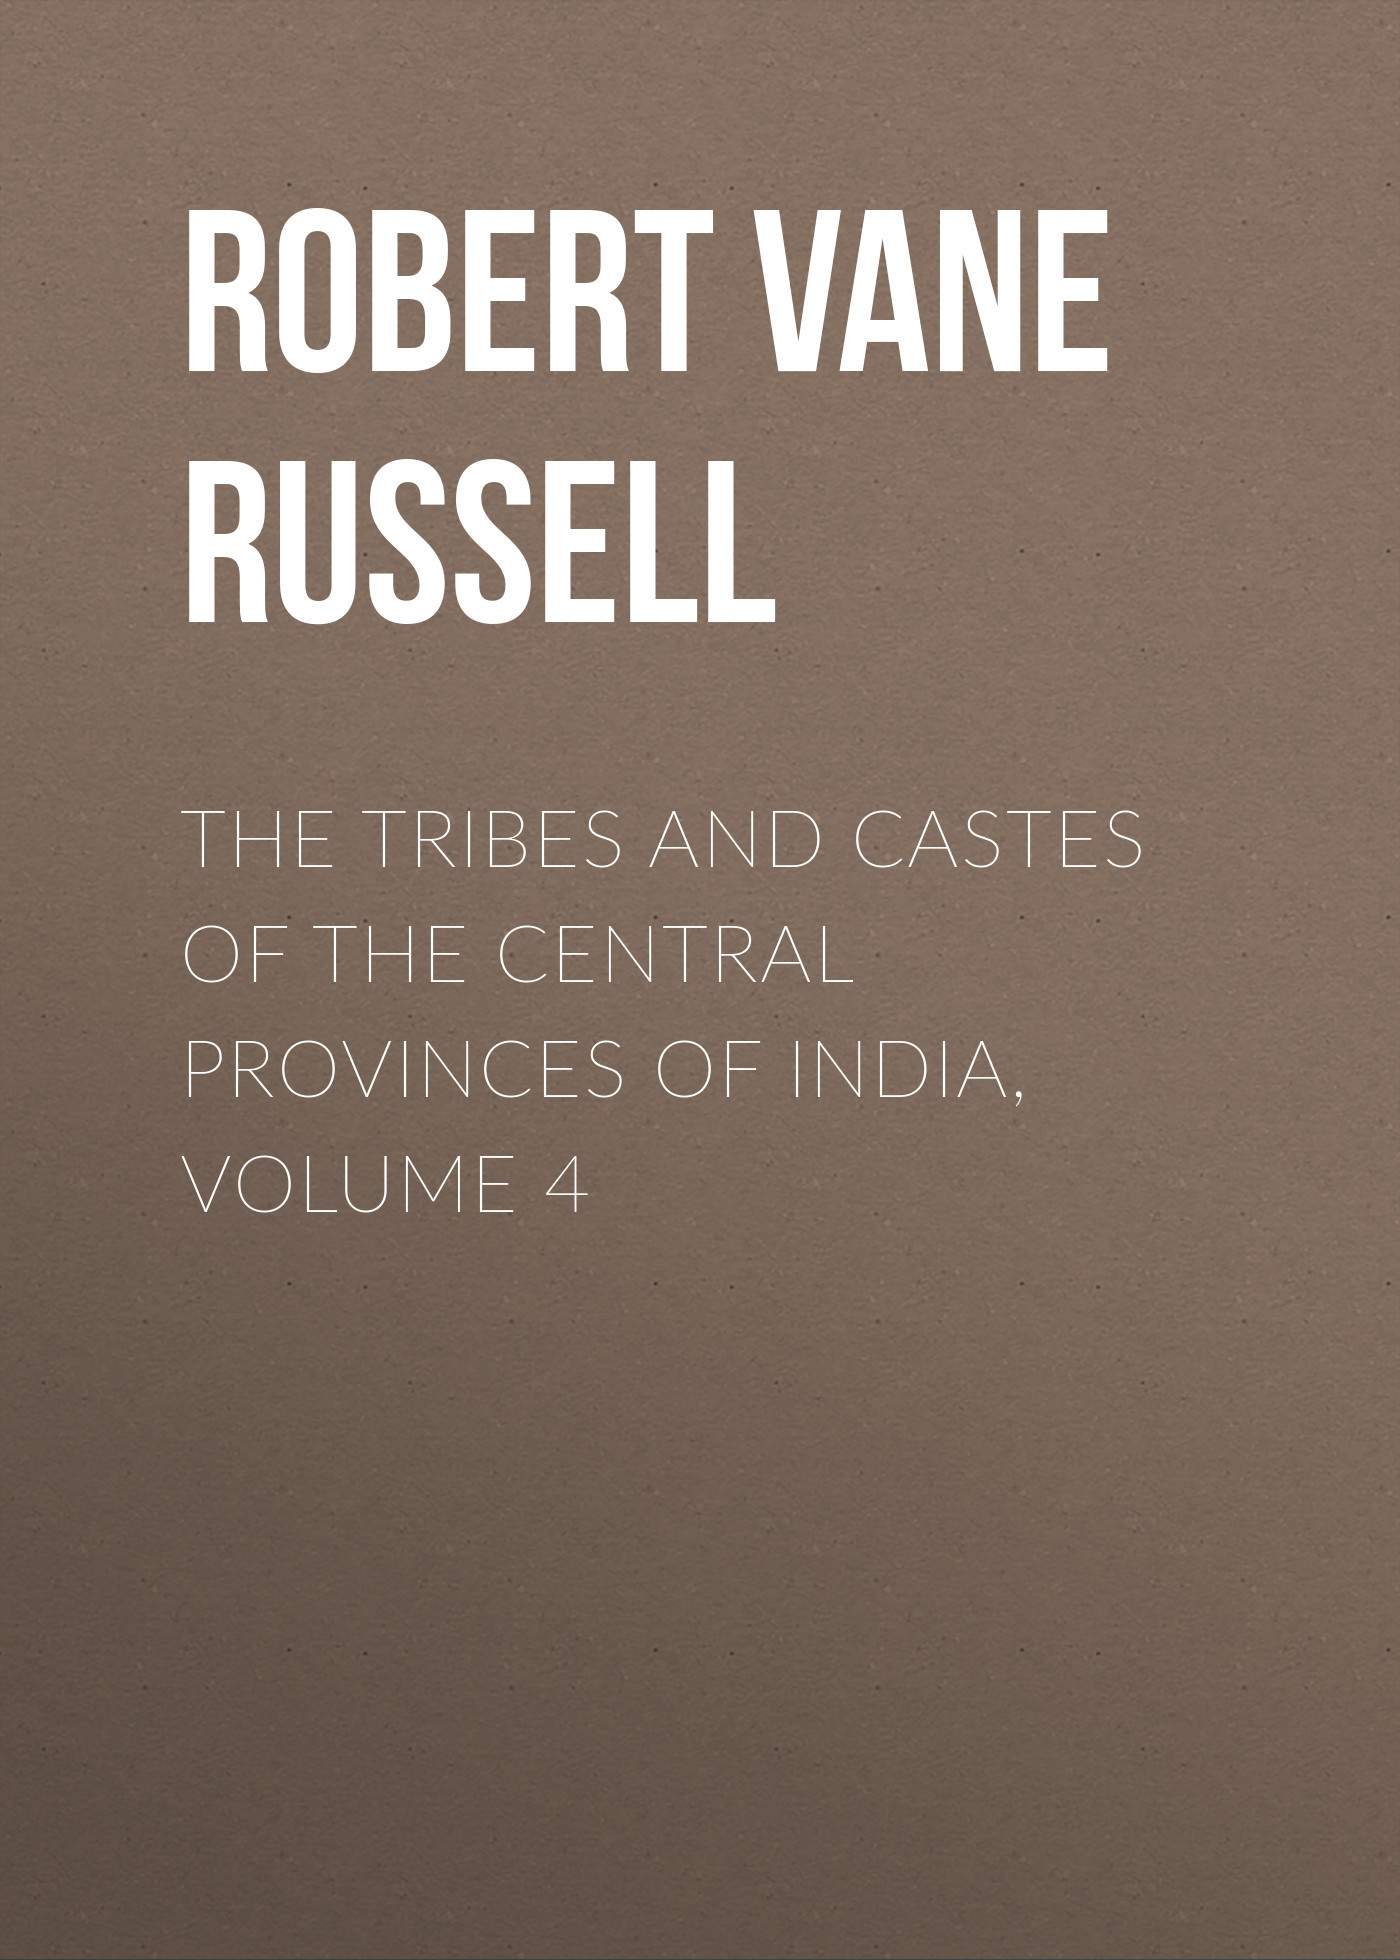 Robert Vane Russell The Tribes and Castes of the Central Provinces of India, Volume 4 vintage colorful minimalist cement hanging pendant lamp 220v e27 led light with switch lighting fixture for hallway bar bedroom